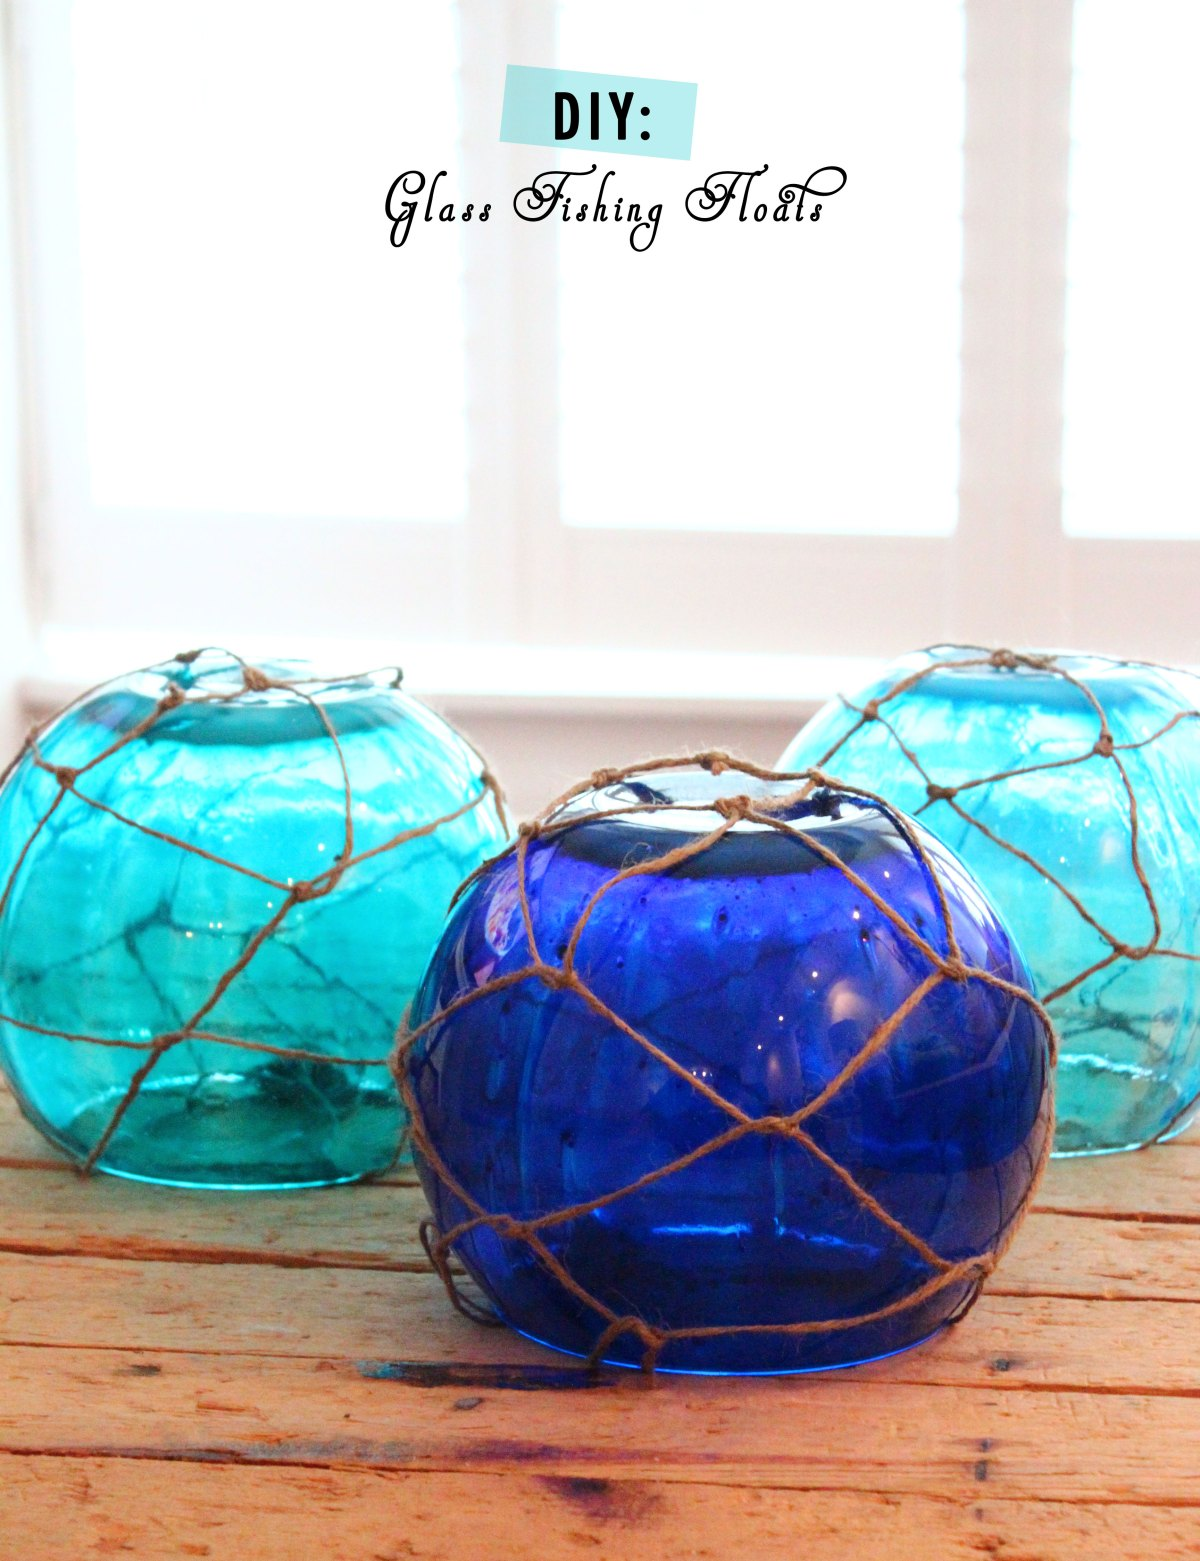 Make Glass Fishing Floats